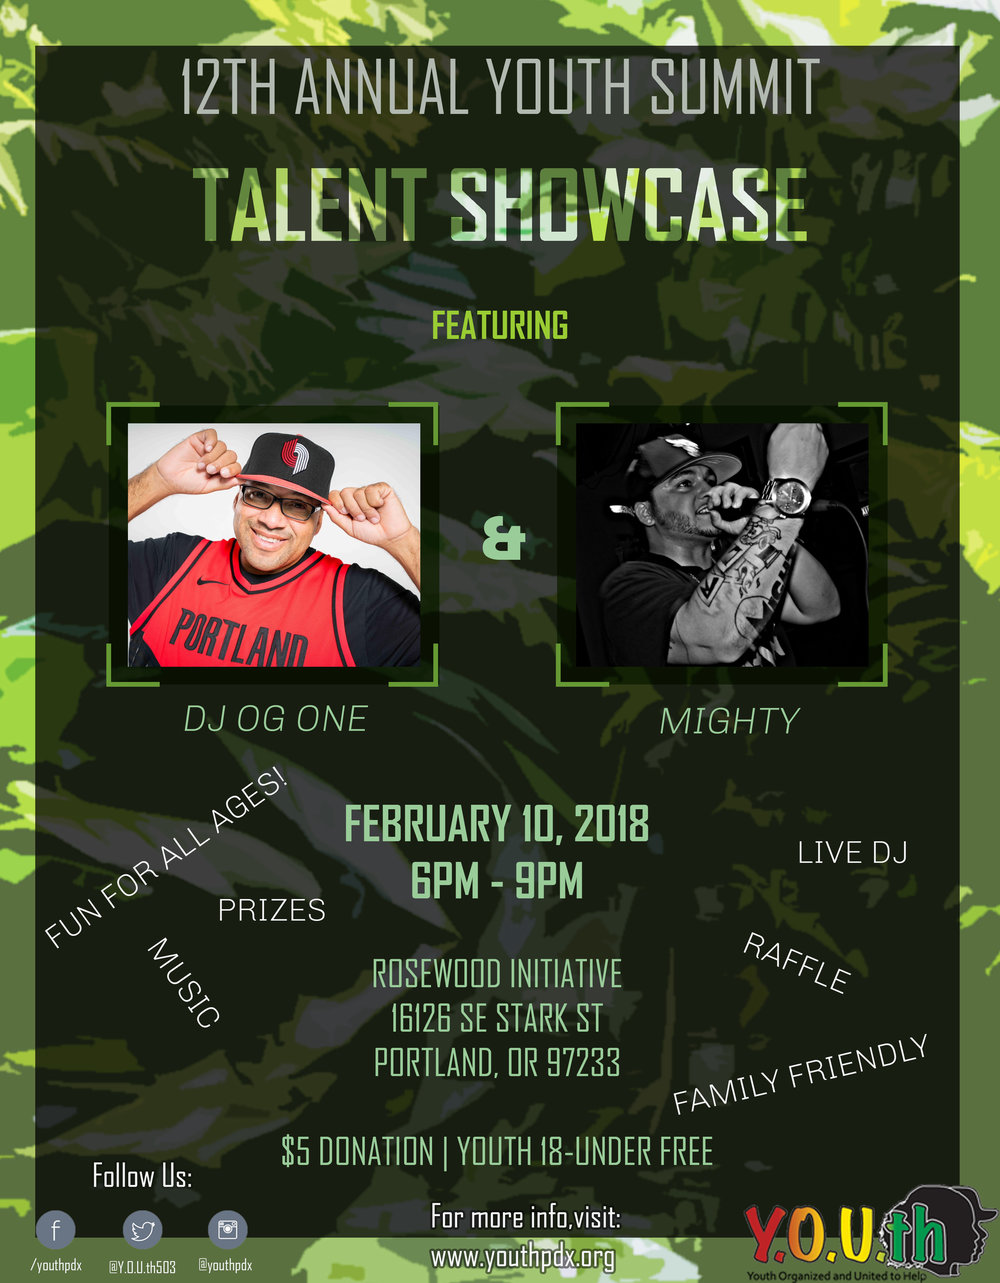 sURVIVAL OF THE FITTESTTalent Showcasesaturday, february 10, 20186pm - 9PM 16126 SE stark st. portland - Come support young artist. If you have a talent and are interested in performing sign up on the registration page and bring your talents. Featuring Mighty, Sammy and music for the last hour by DJ OG ONE.